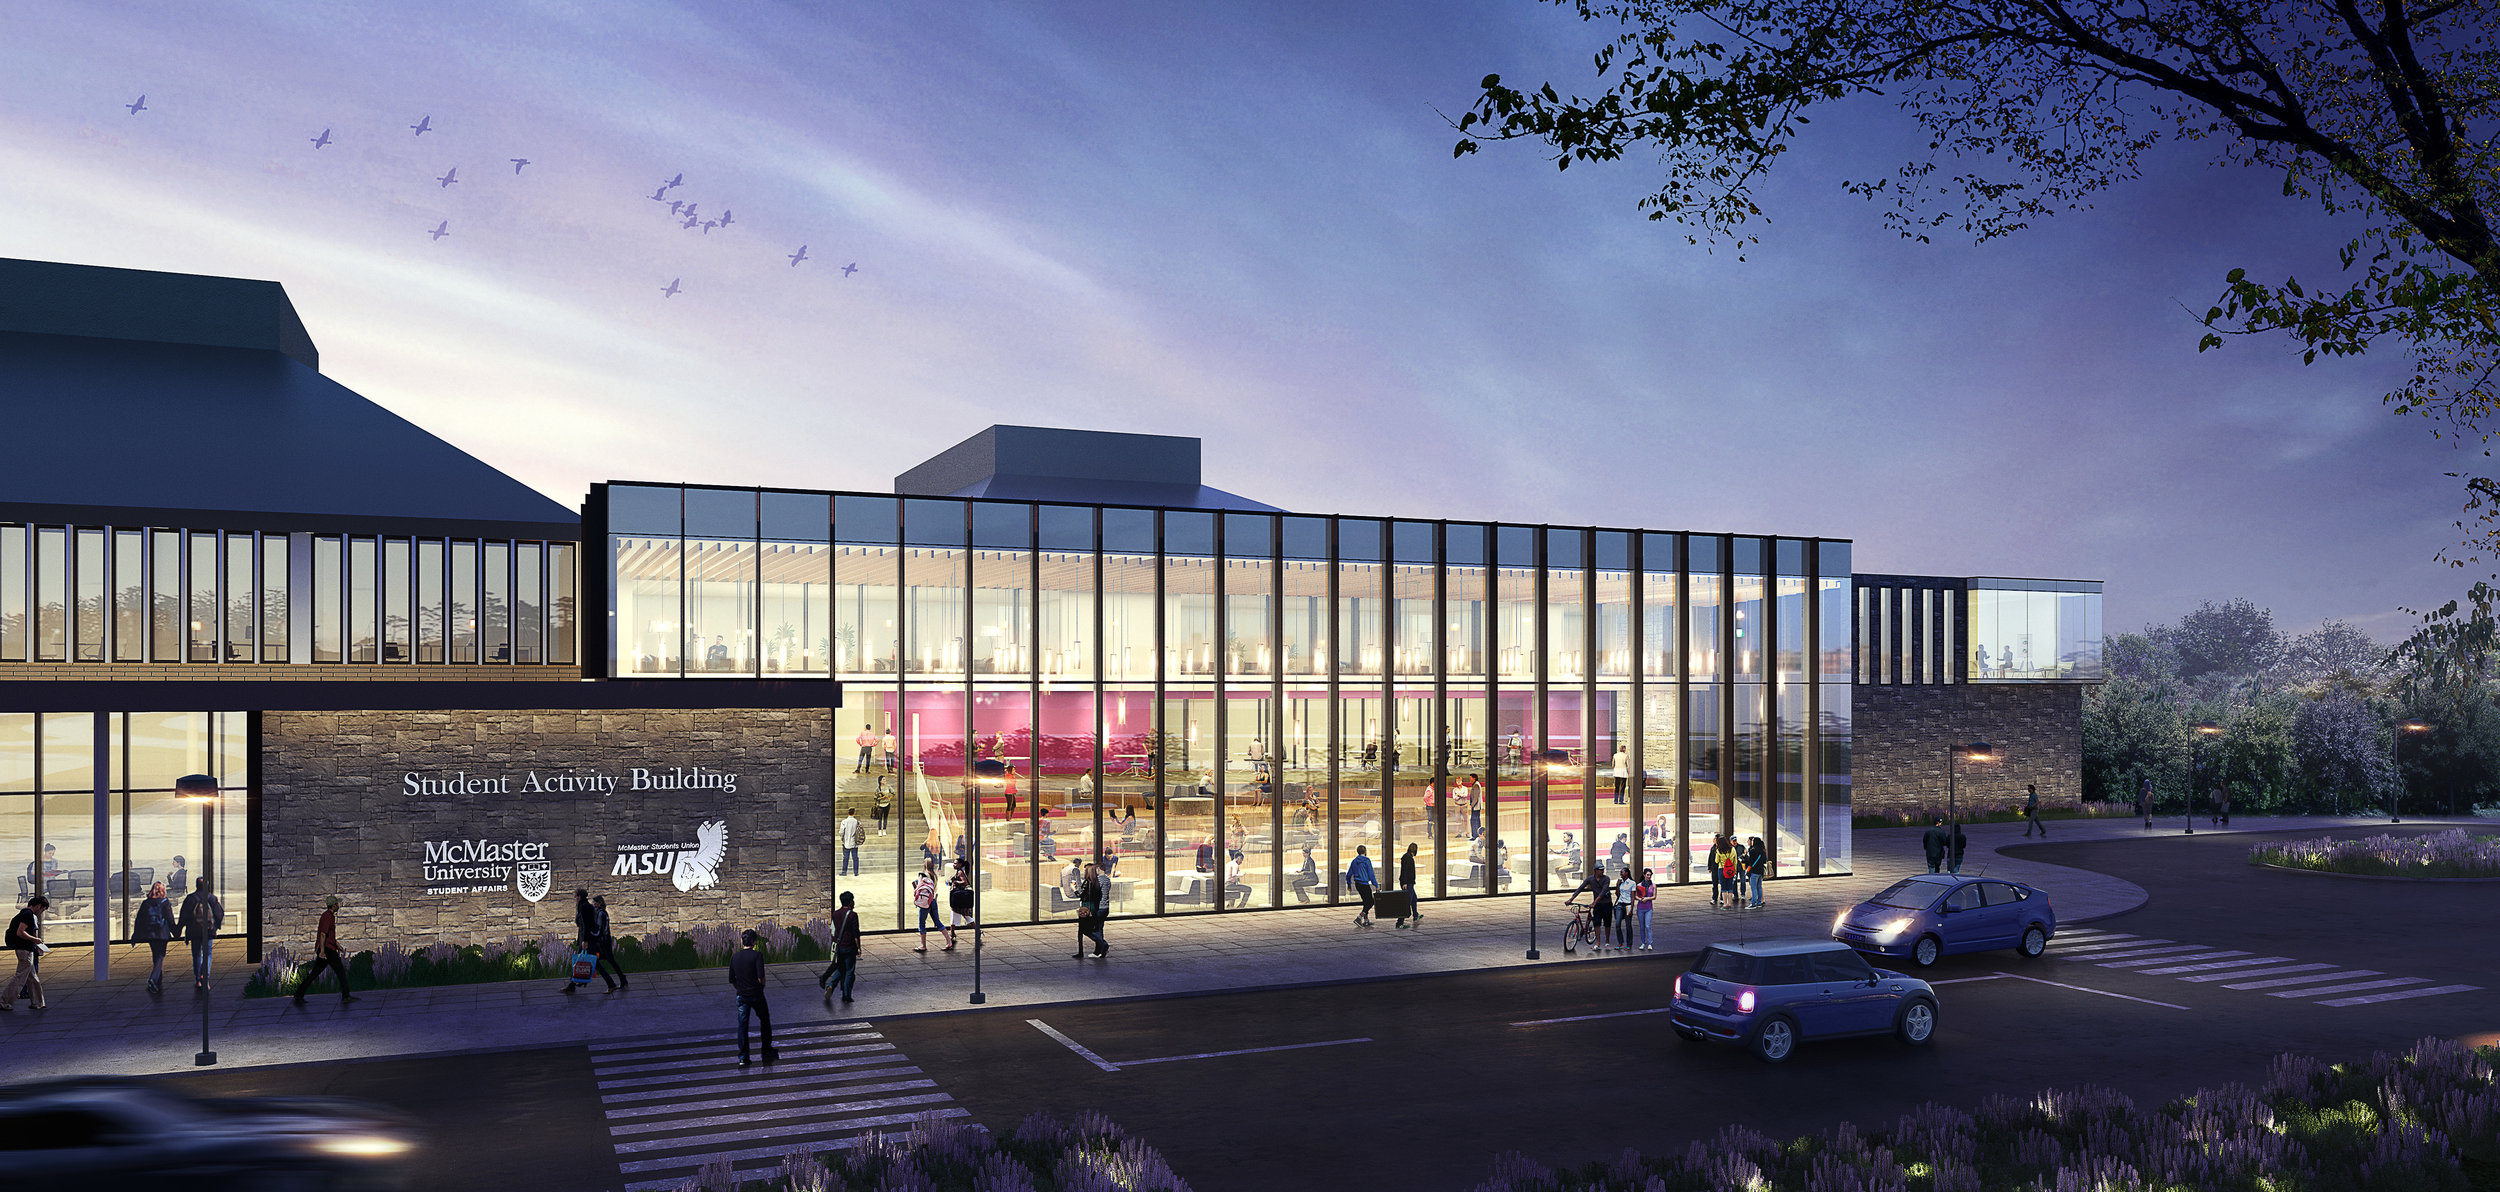 The MSU, through negotiations with the University and the subsequent student referendum, will add 40,000 square feet of non-academic, student-focused space to campus.. The building will include a grocery store, prayer space, event space, a peer support hub, a community kitchen and more.